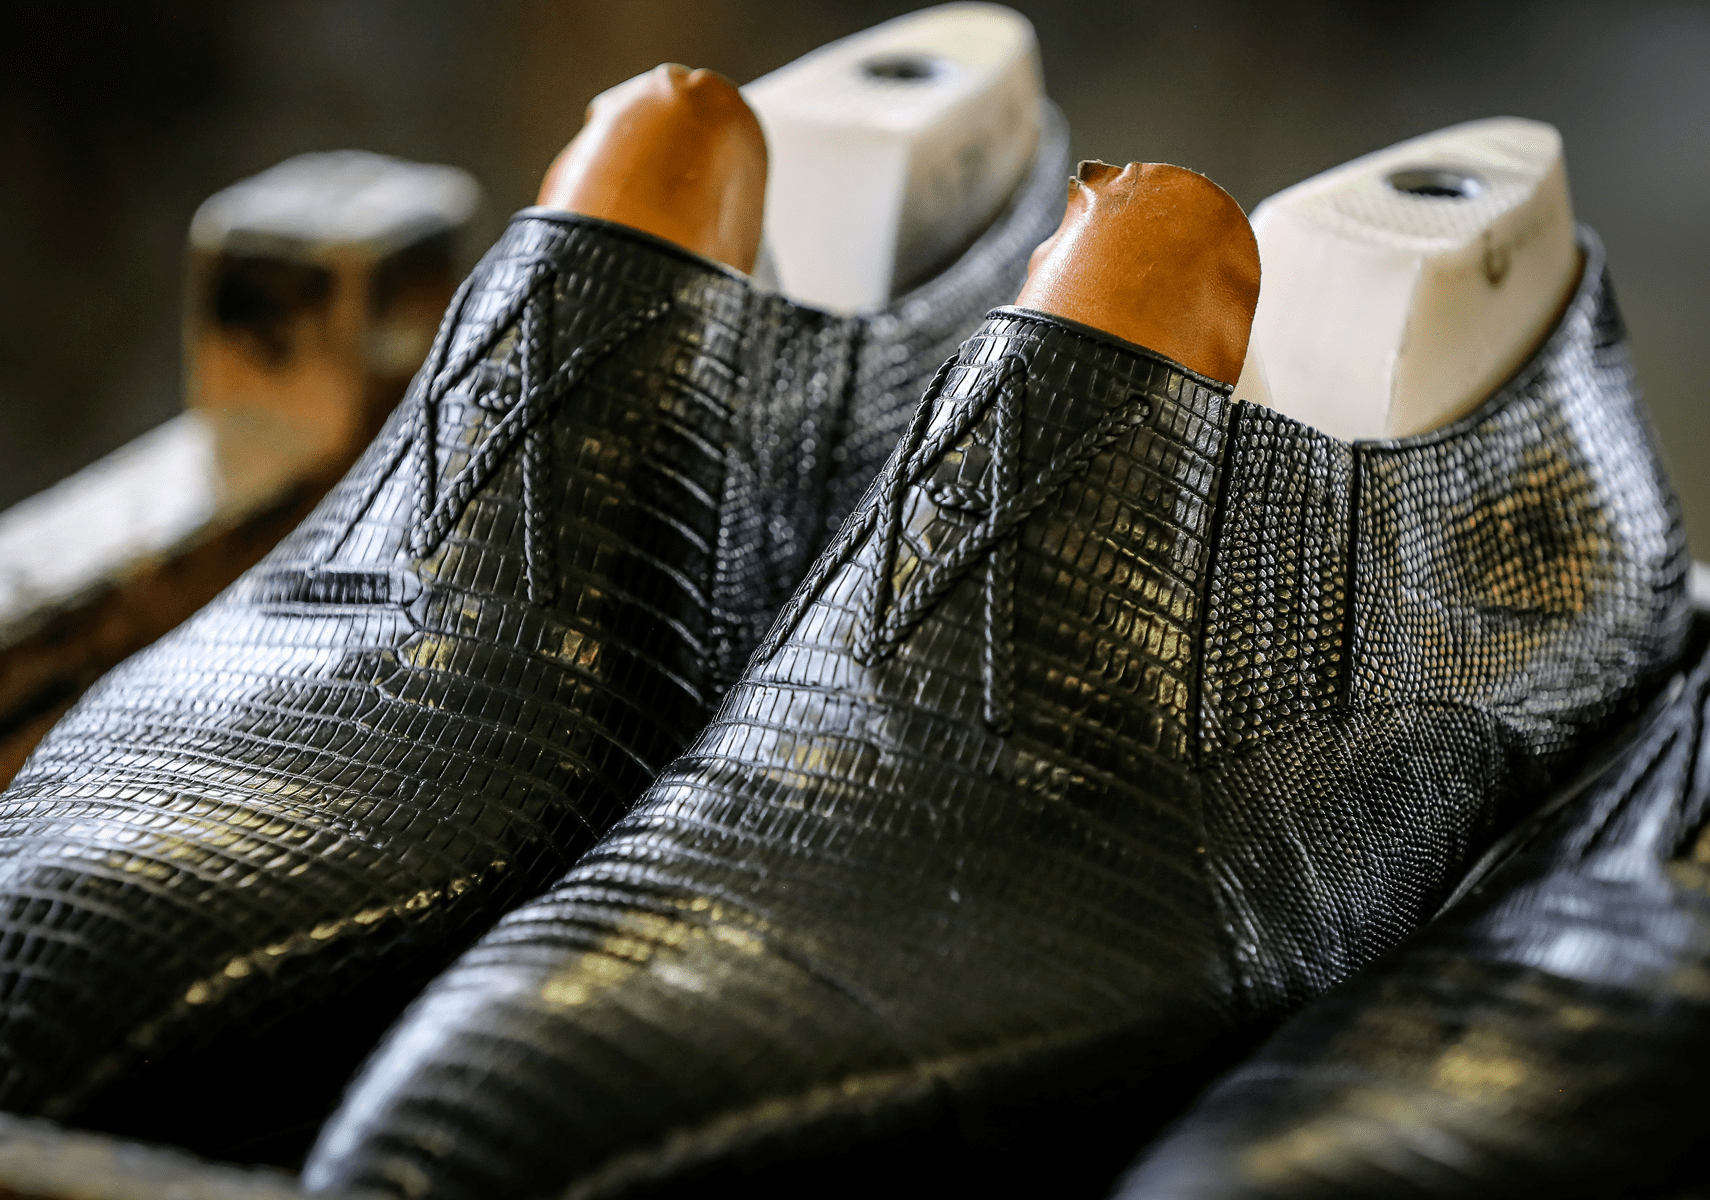 The realization of our luxury shoes